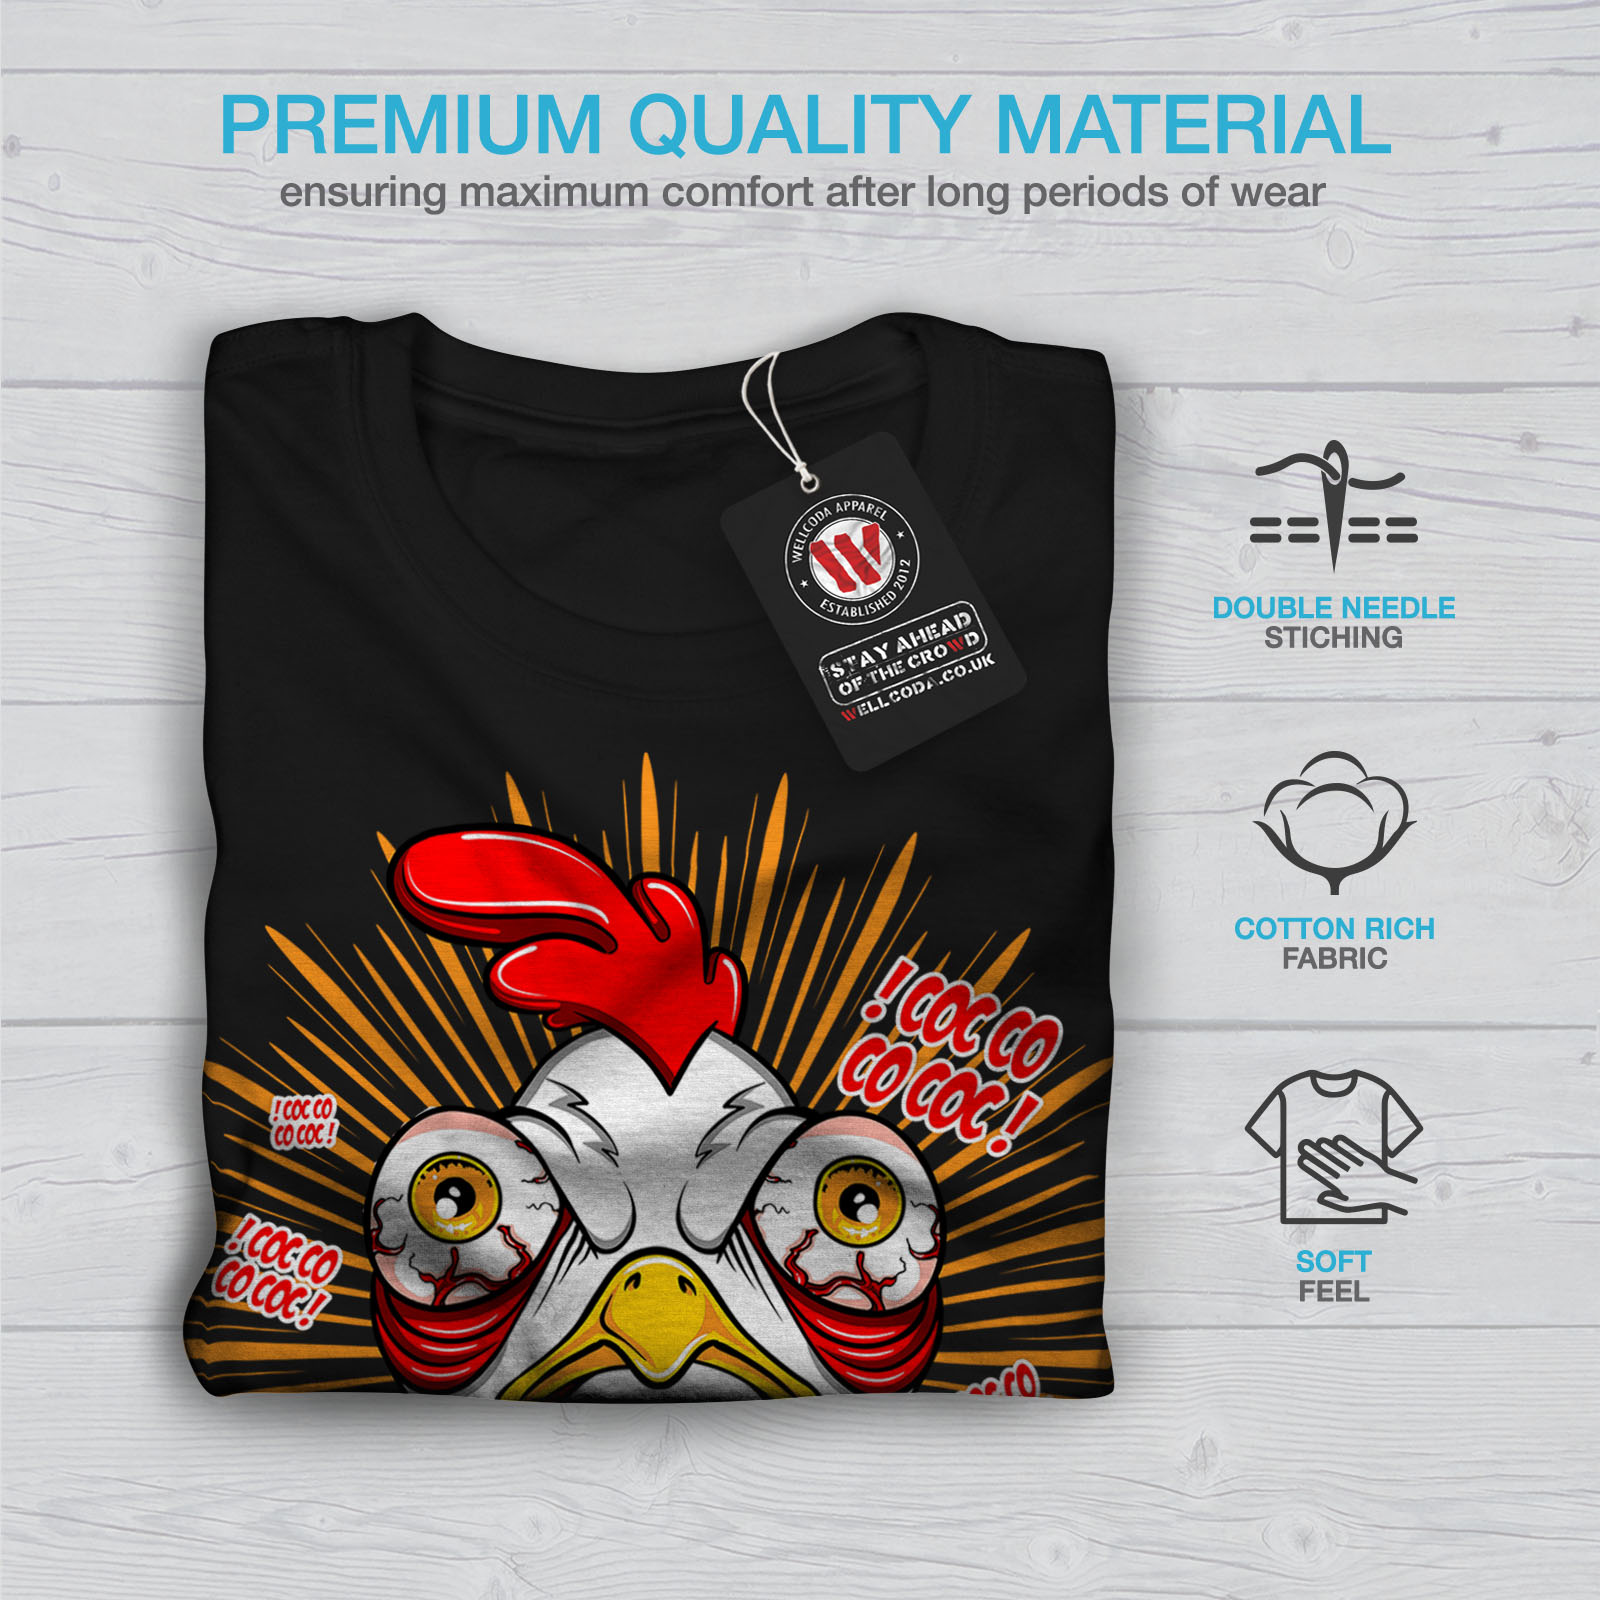 thumbnail 7 - Wellcoda-Crazy-Chicken-Mens-T-shirt-Funny-Face-Graphic-Design-Printed-Tee